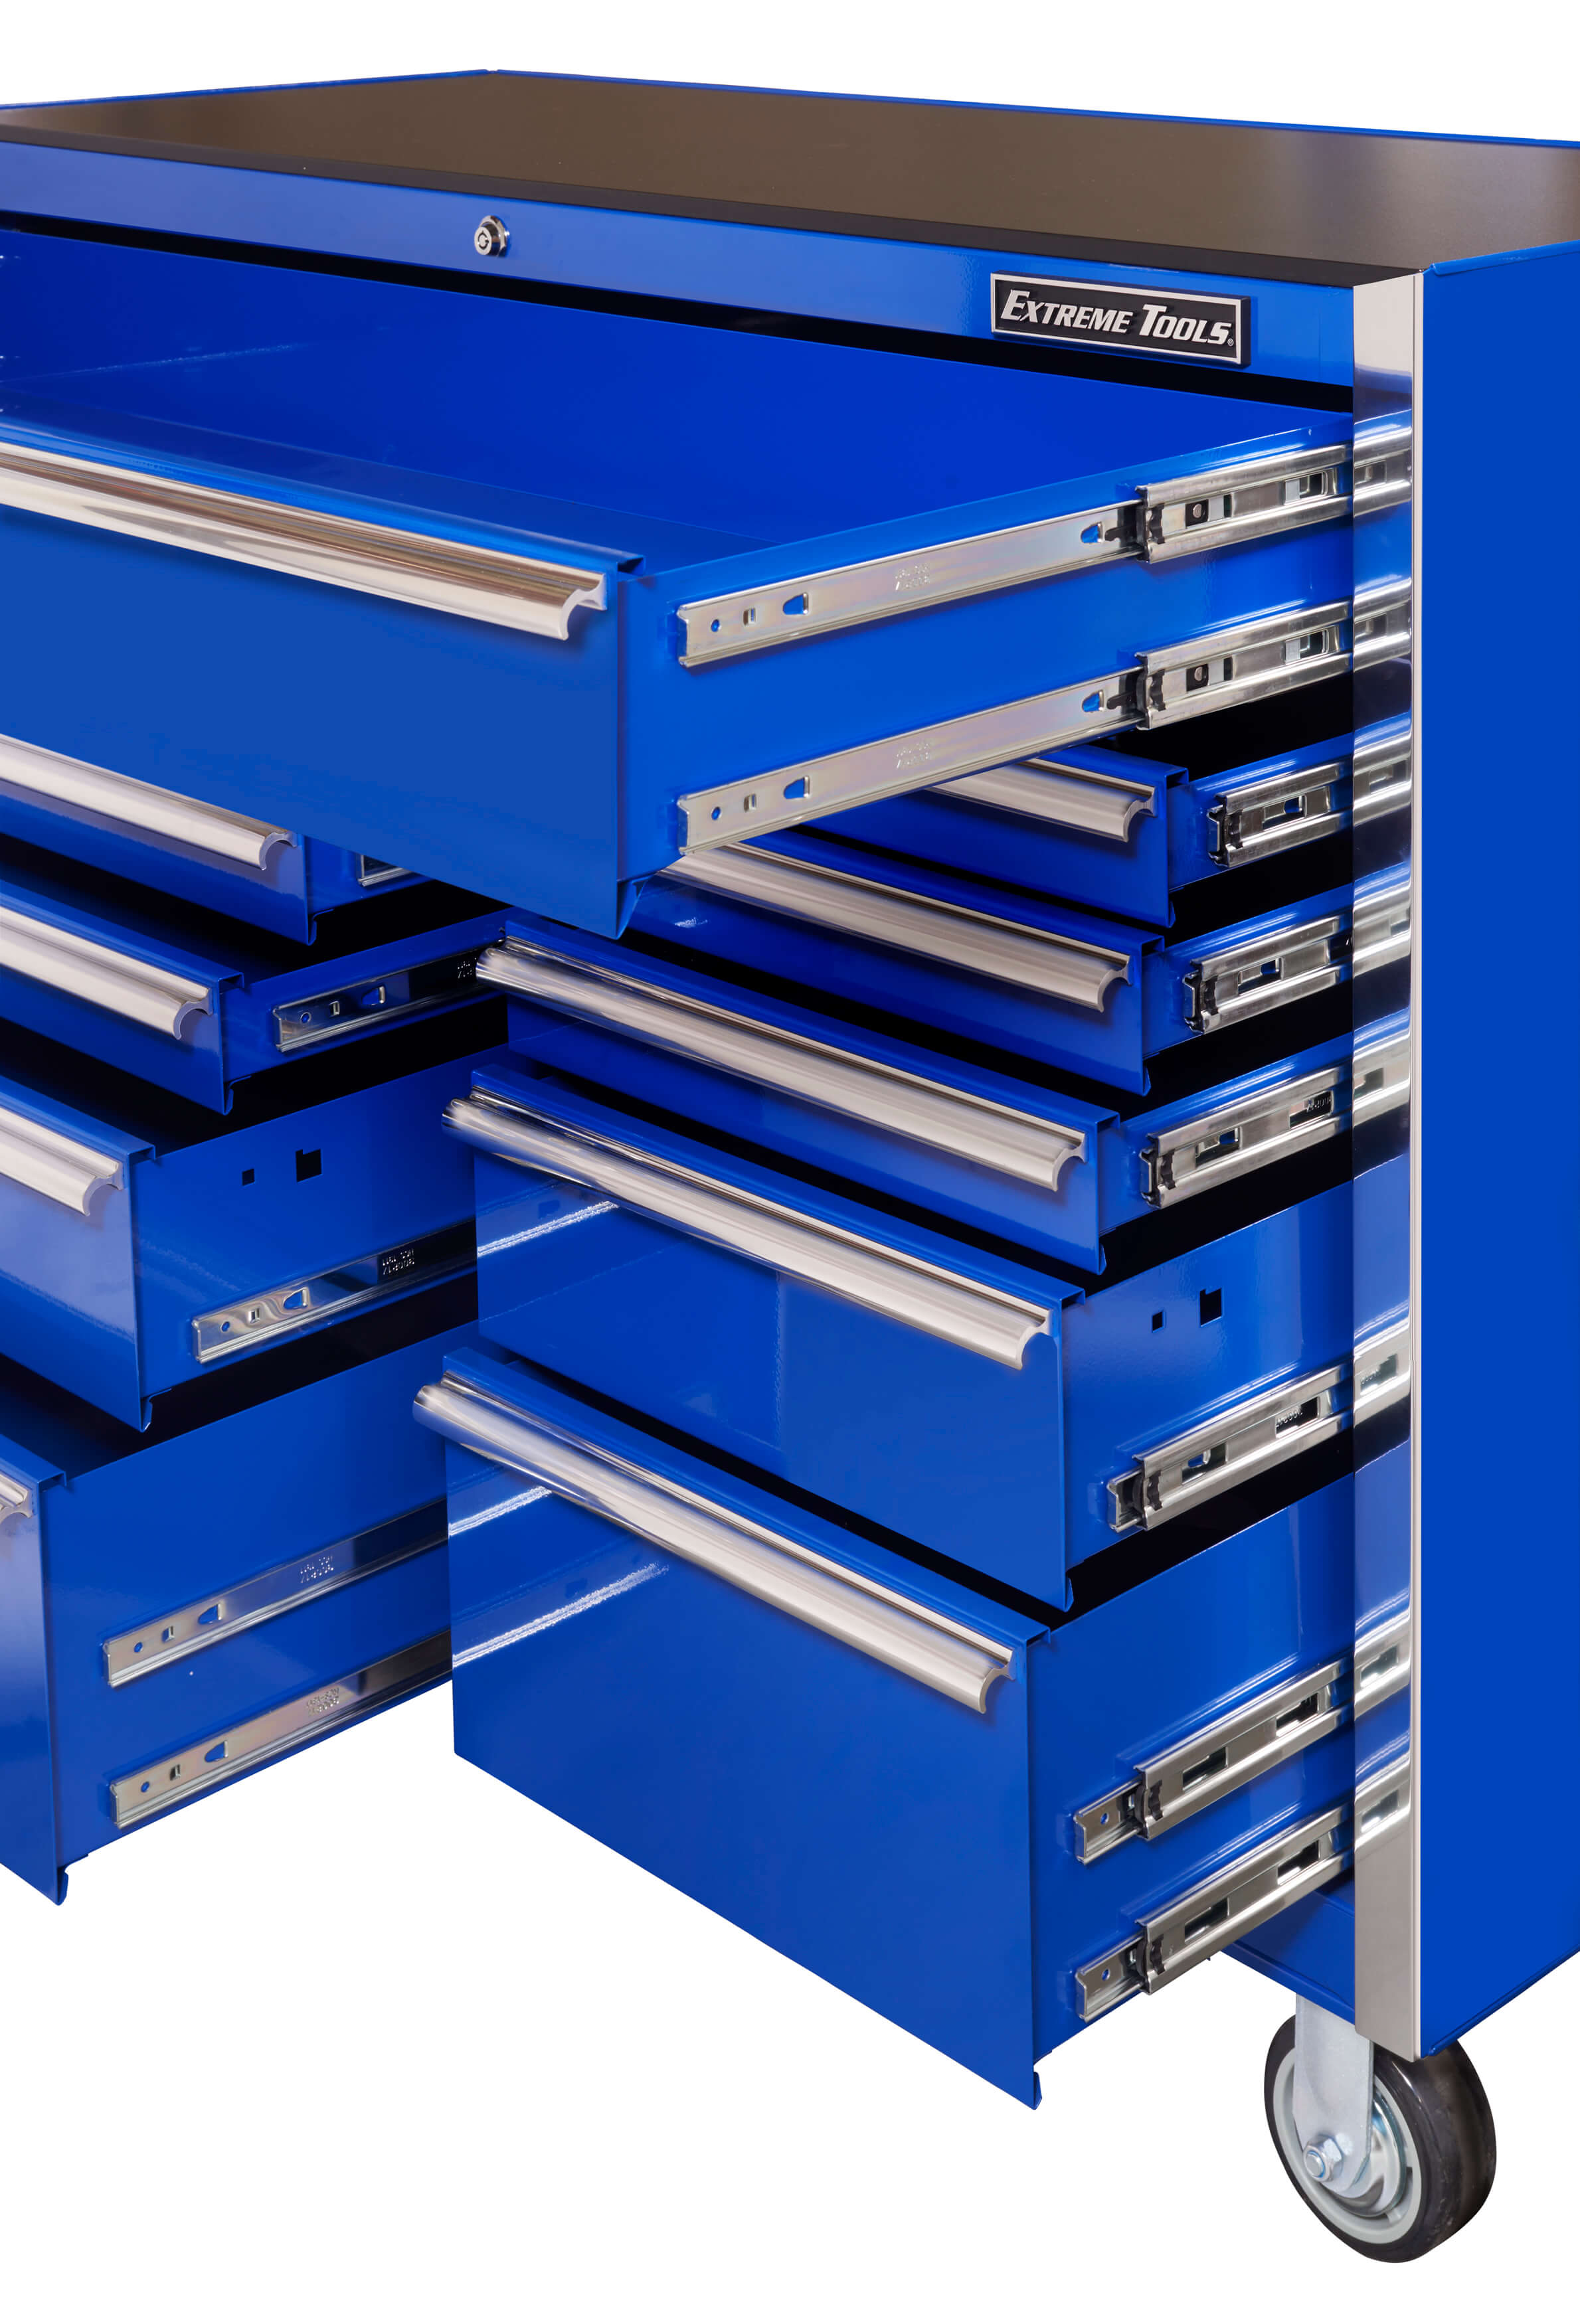 EXTREME TOOLS® 56 inch 11 DRAWER STANDARD ROLLER CABINET